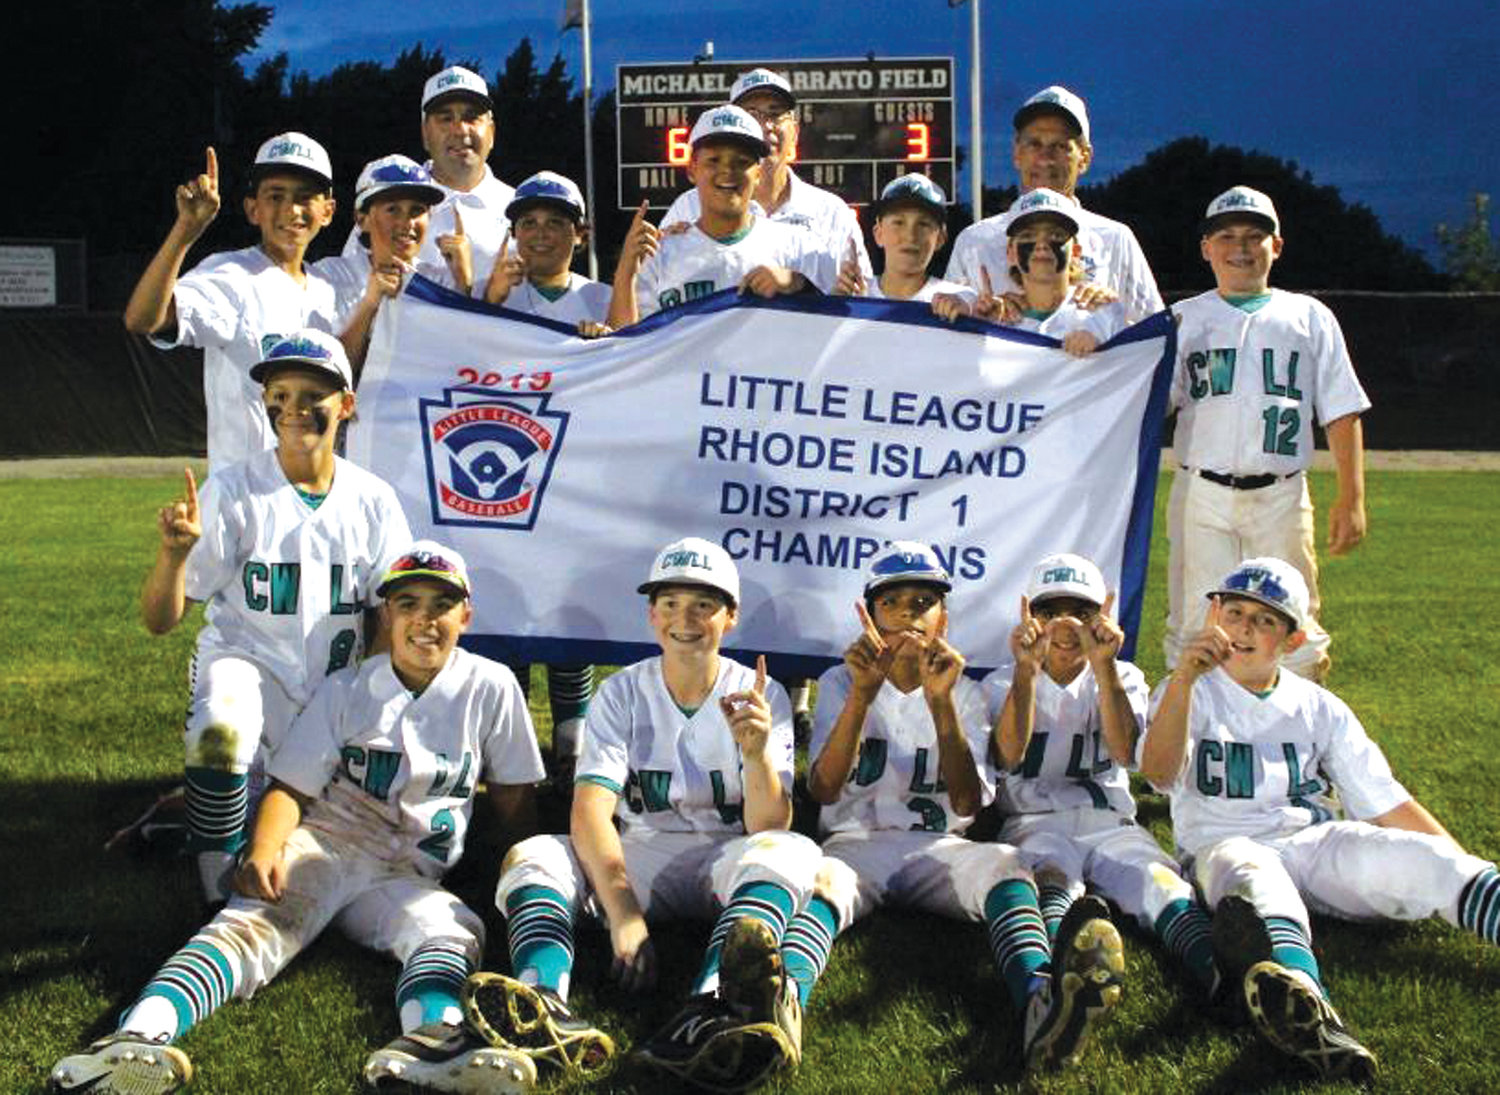 WE ARE THE CHAMPIONS: The Cranston Western 12's after winning the District I title.